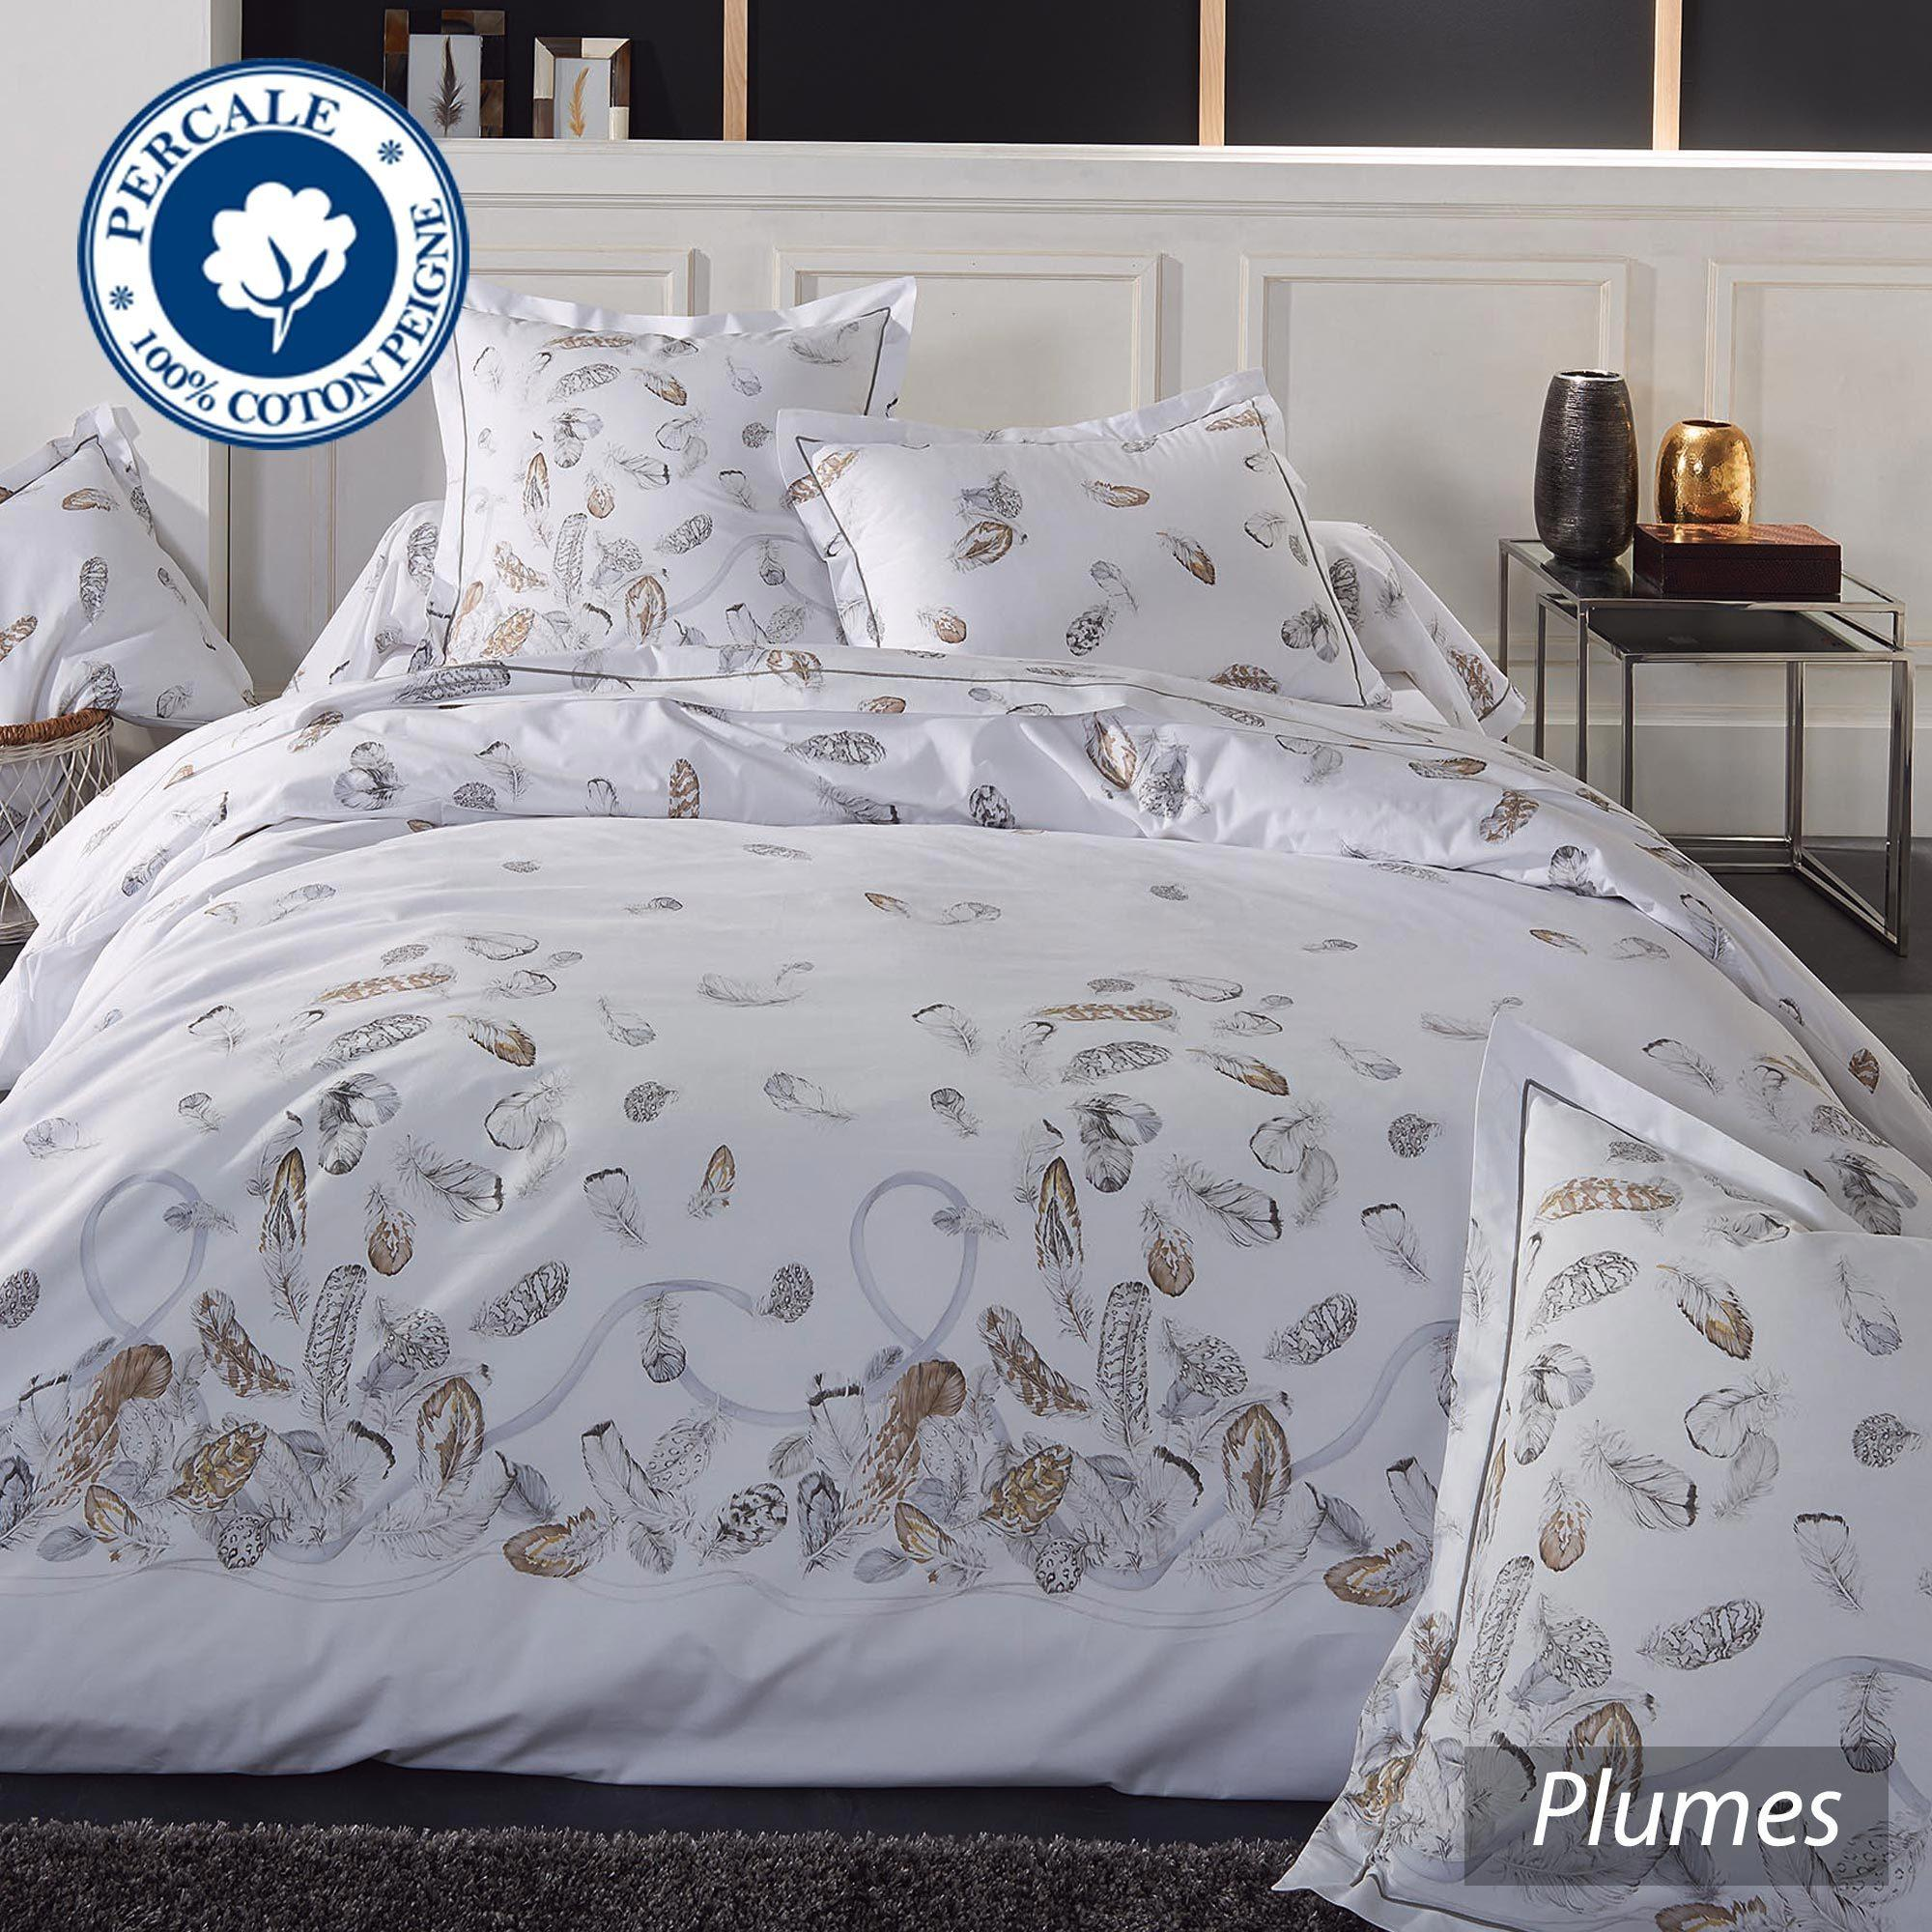 parure de lit percale pur coton peign 200x200 cm plumes linnea vente de linge de maison. Black Bedroom Furniture Sets. Home Design Ideas